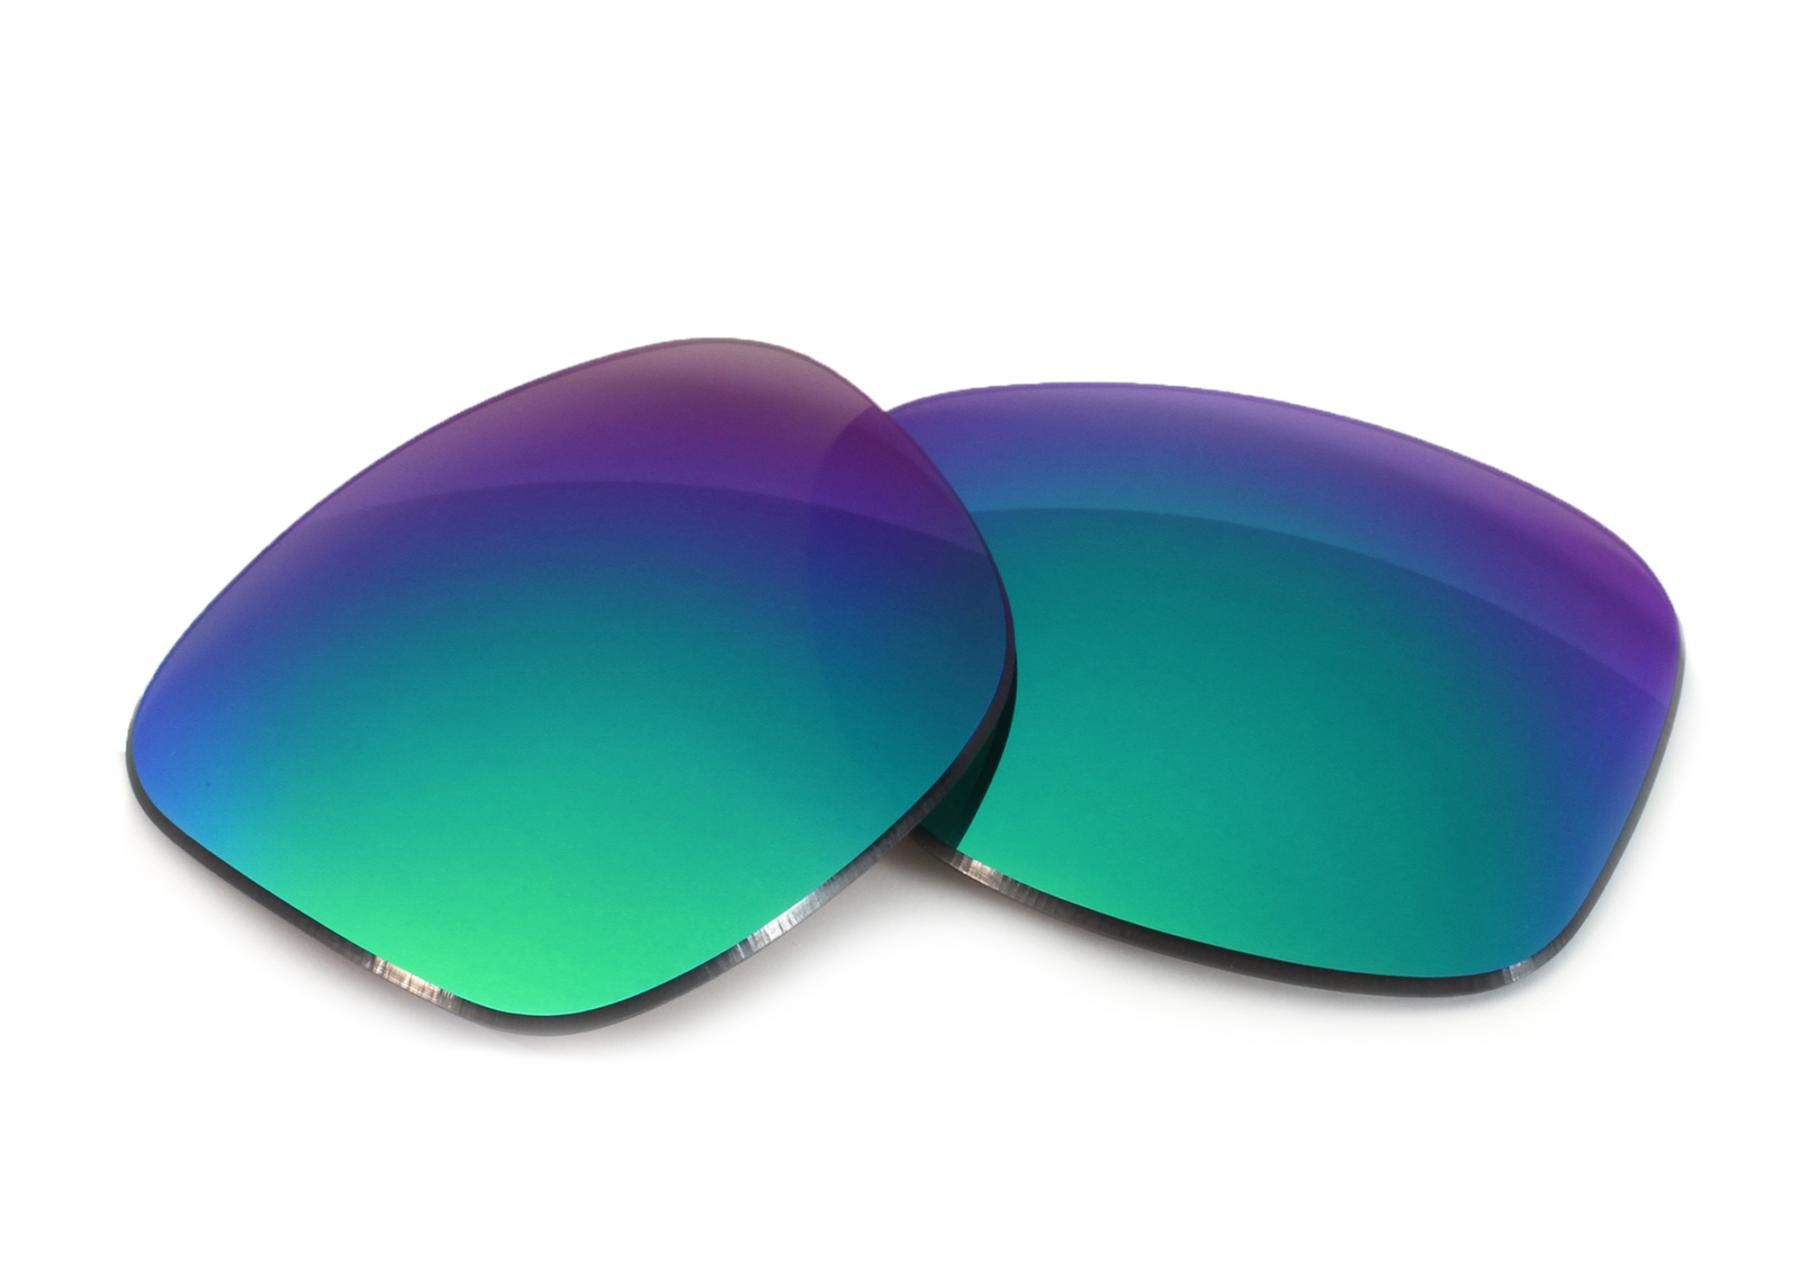 e637087381 Oakley Dispatch 2 Grey Lens with Green Mirror Replacement Lenses ...